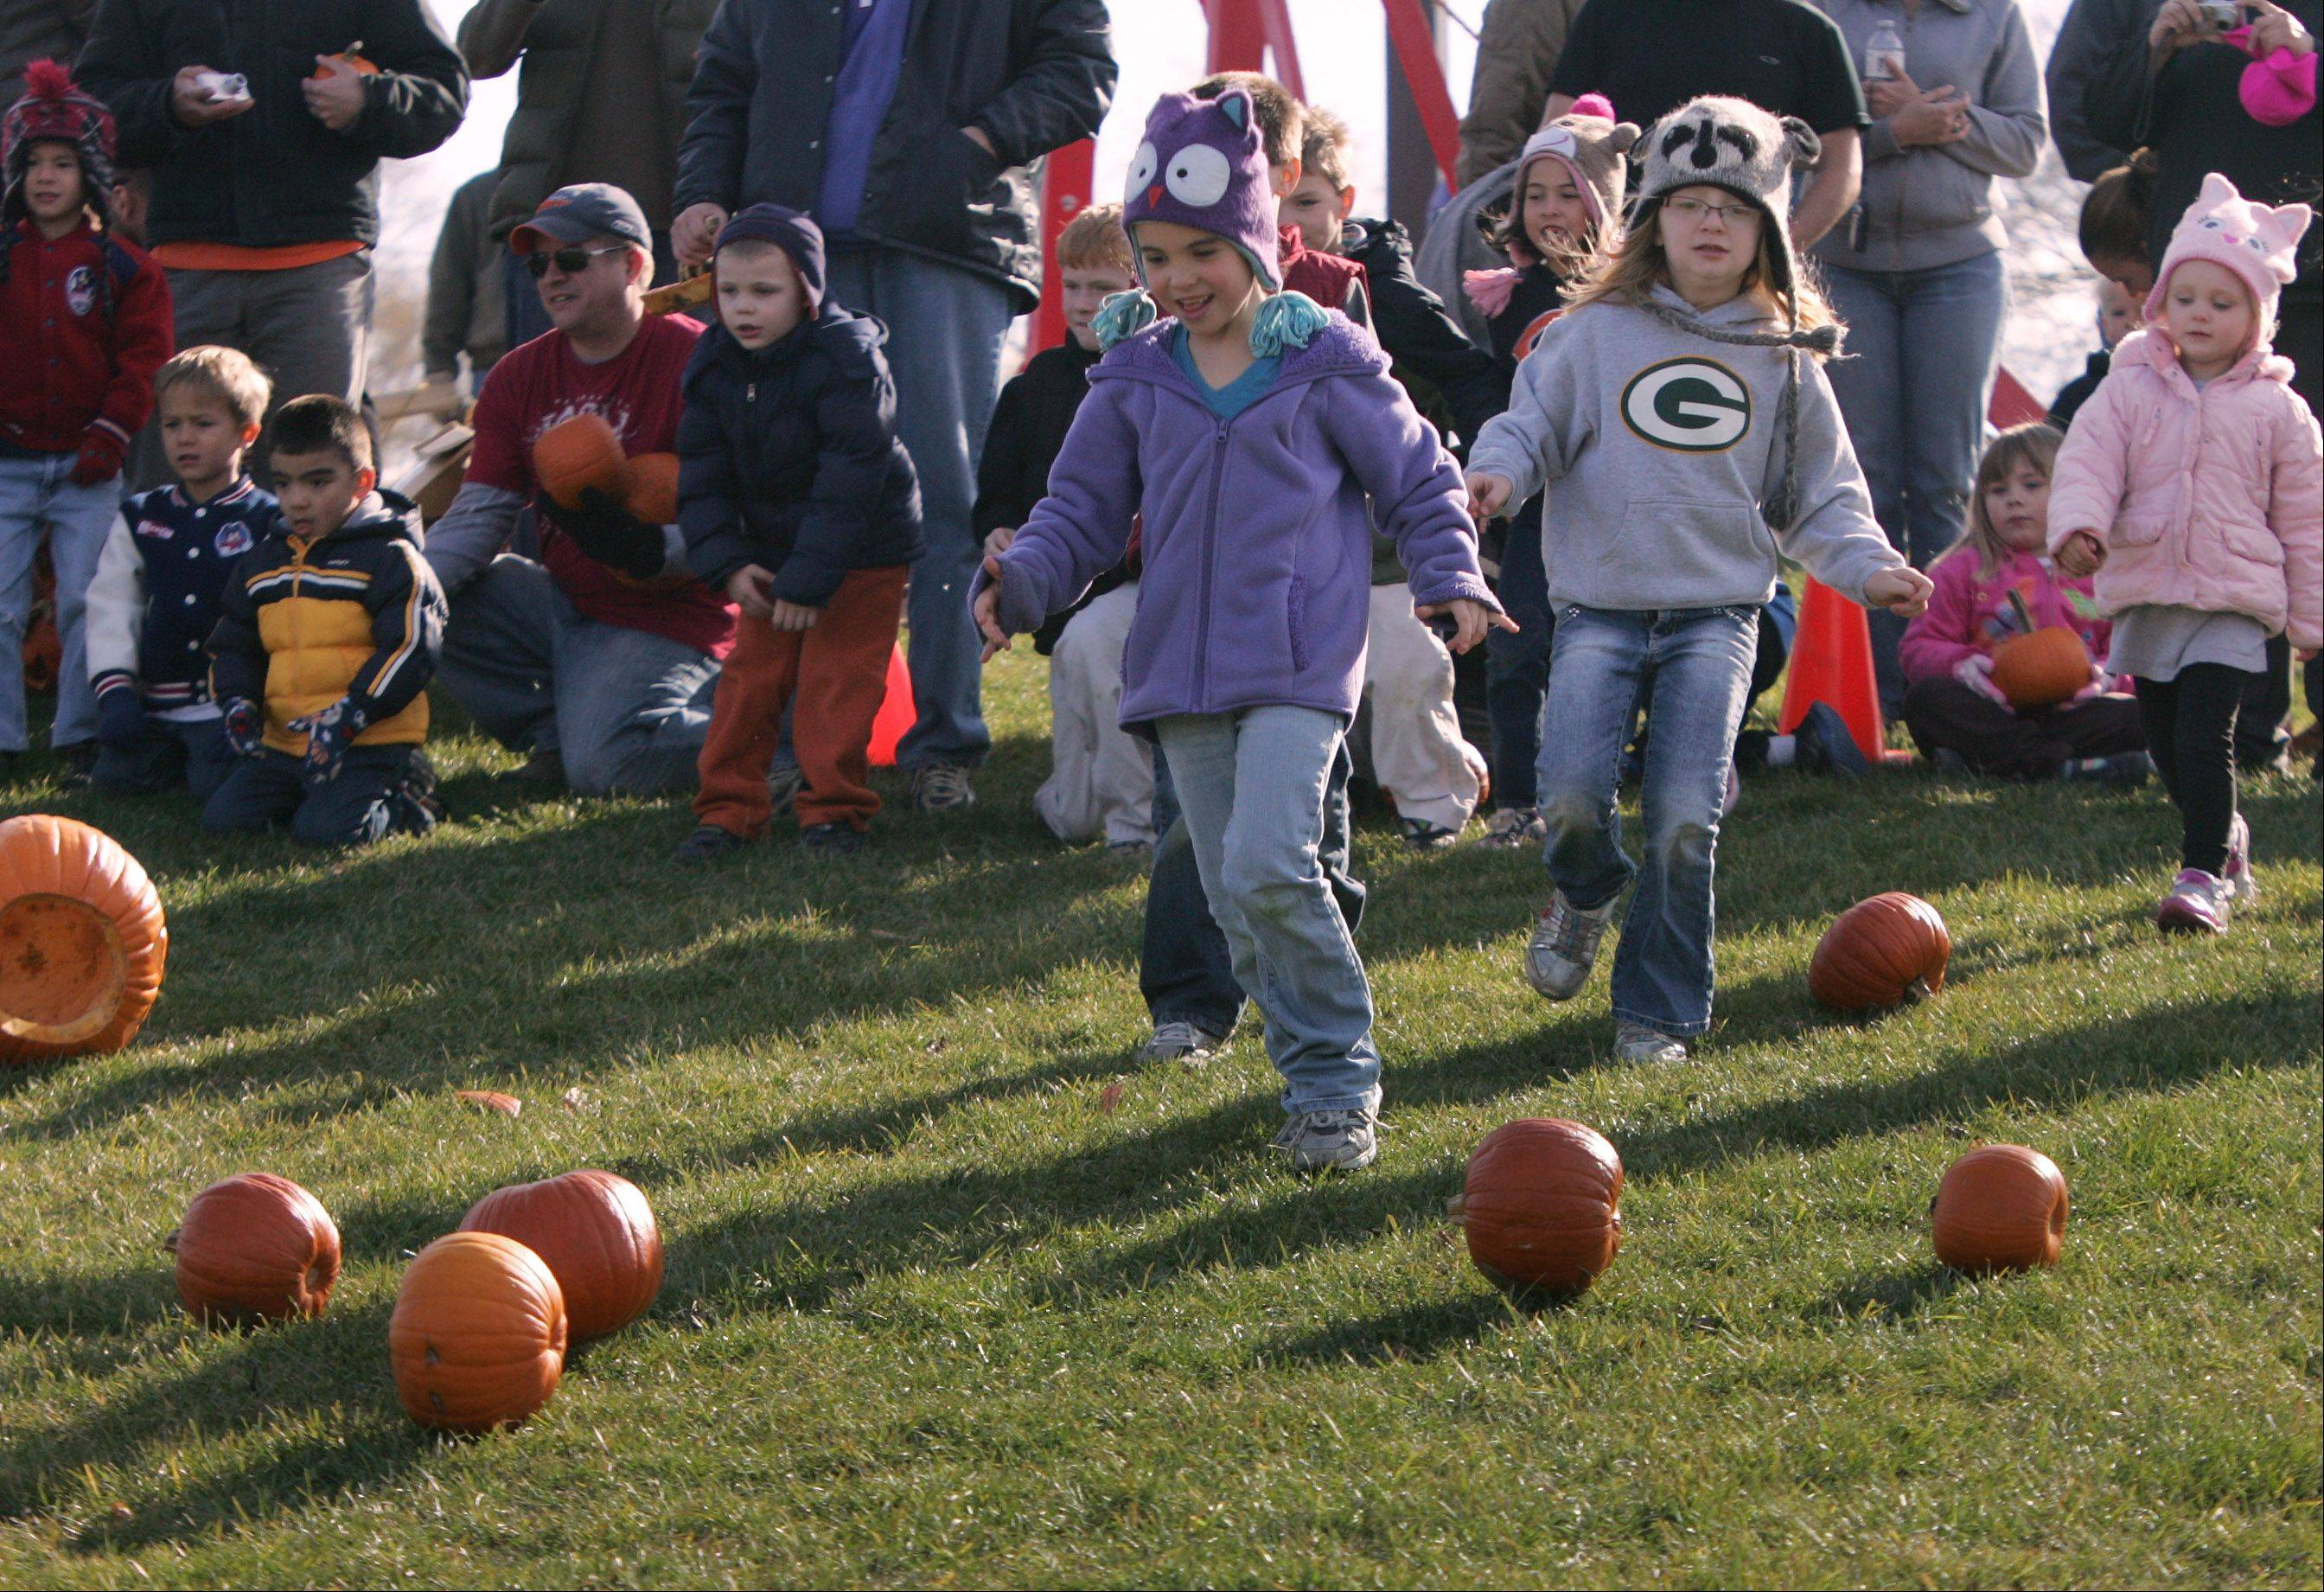 Caitlin Pron, 6, of Lake Villa, in purple, and Emma Carter, 6, of Grayslake, right, rolled their pumpkins down the sledding hill during the annual Pumpkin Drop hosted Sunday by the Mundelein Park & Recreation District at Keith Mione Community Park. Families and children brought their Halloween pumpkins and rolled them, smashed them and launched them using the Big Red trebuchet designed by Mundelein High School students.